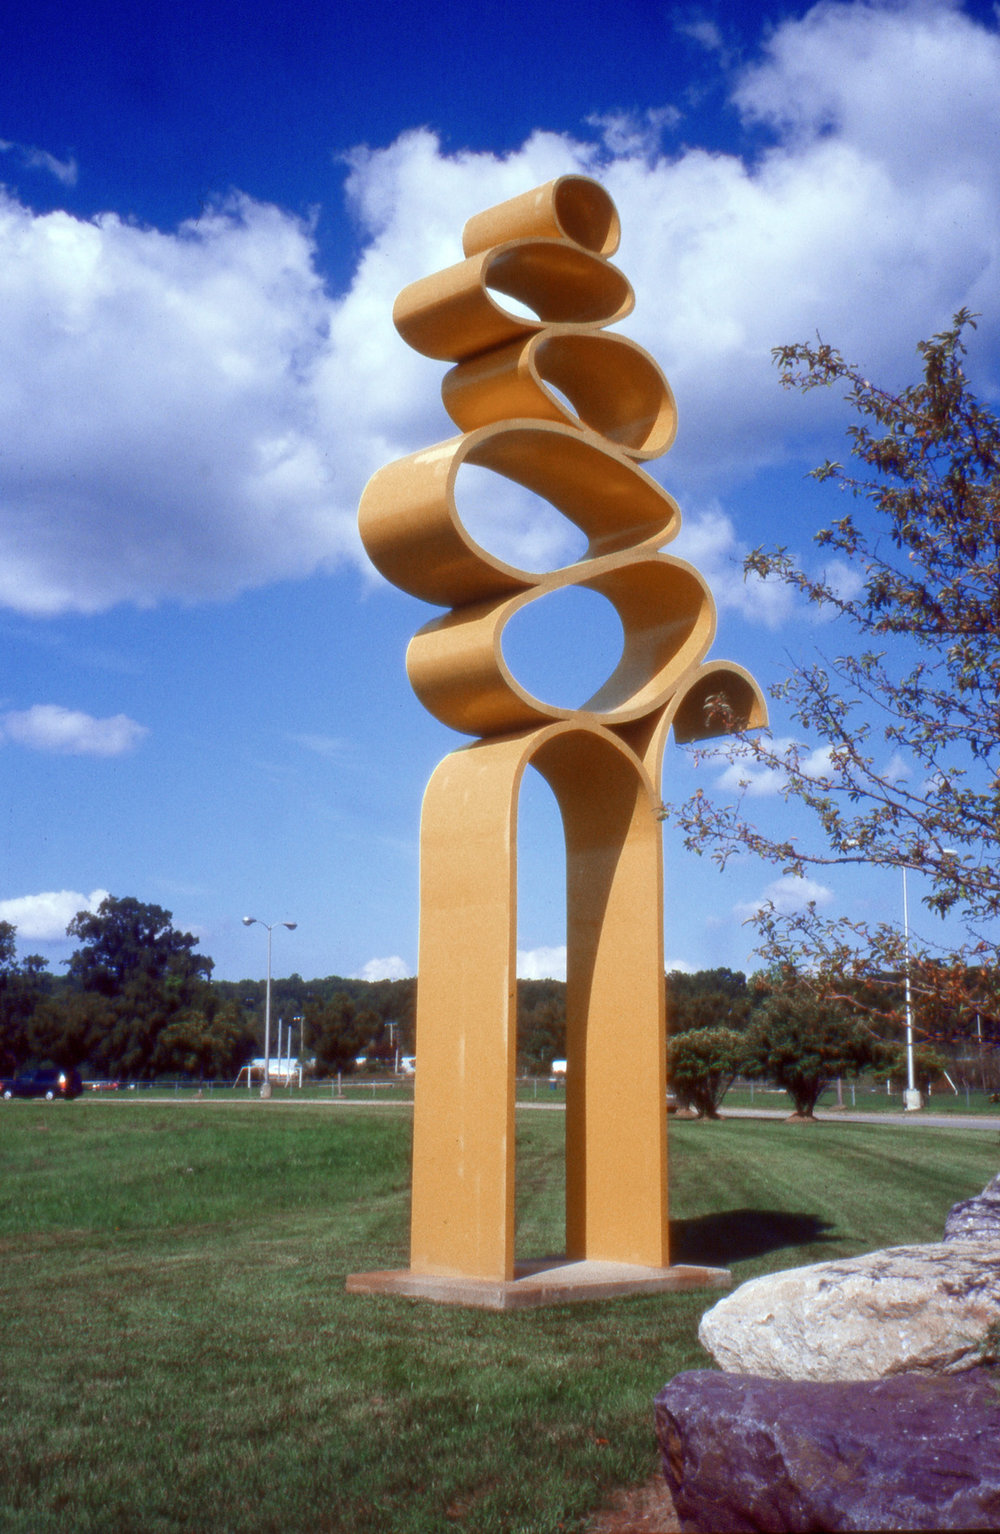 Stablitt 55  1977, painted steel, 26 x 13 x 2.5 feet  Rockaway Townsquare 301 Mount Hope Ave Rockaway, NJ